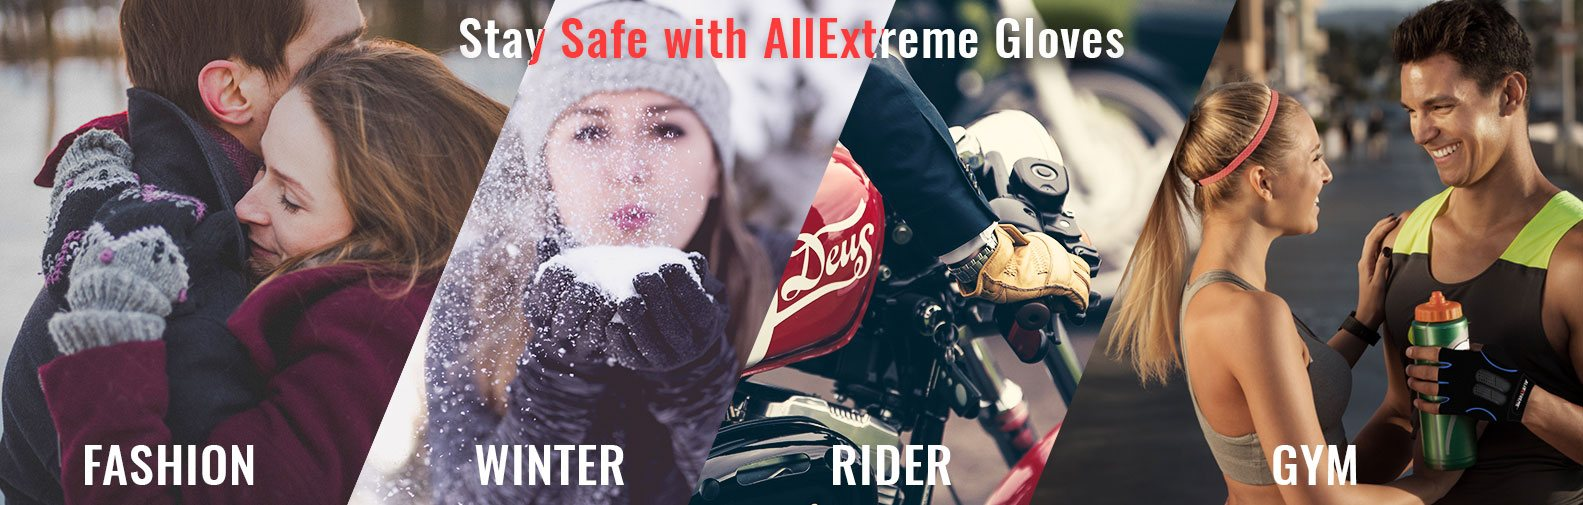 Stay Safe with AllExtreme Gloves